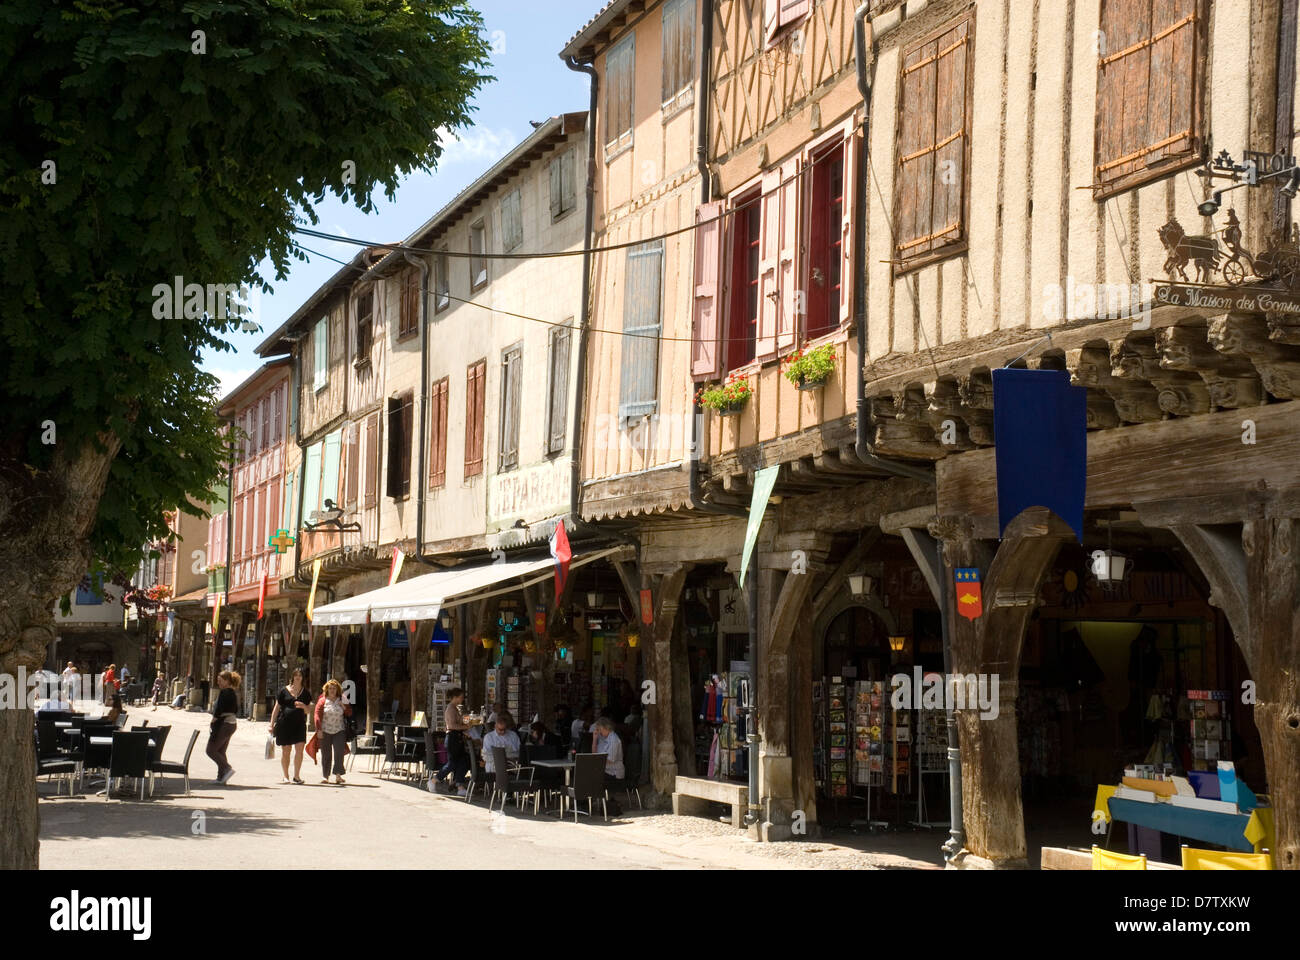 Central square, Mirepoix, Languedoc, France - Stock Image